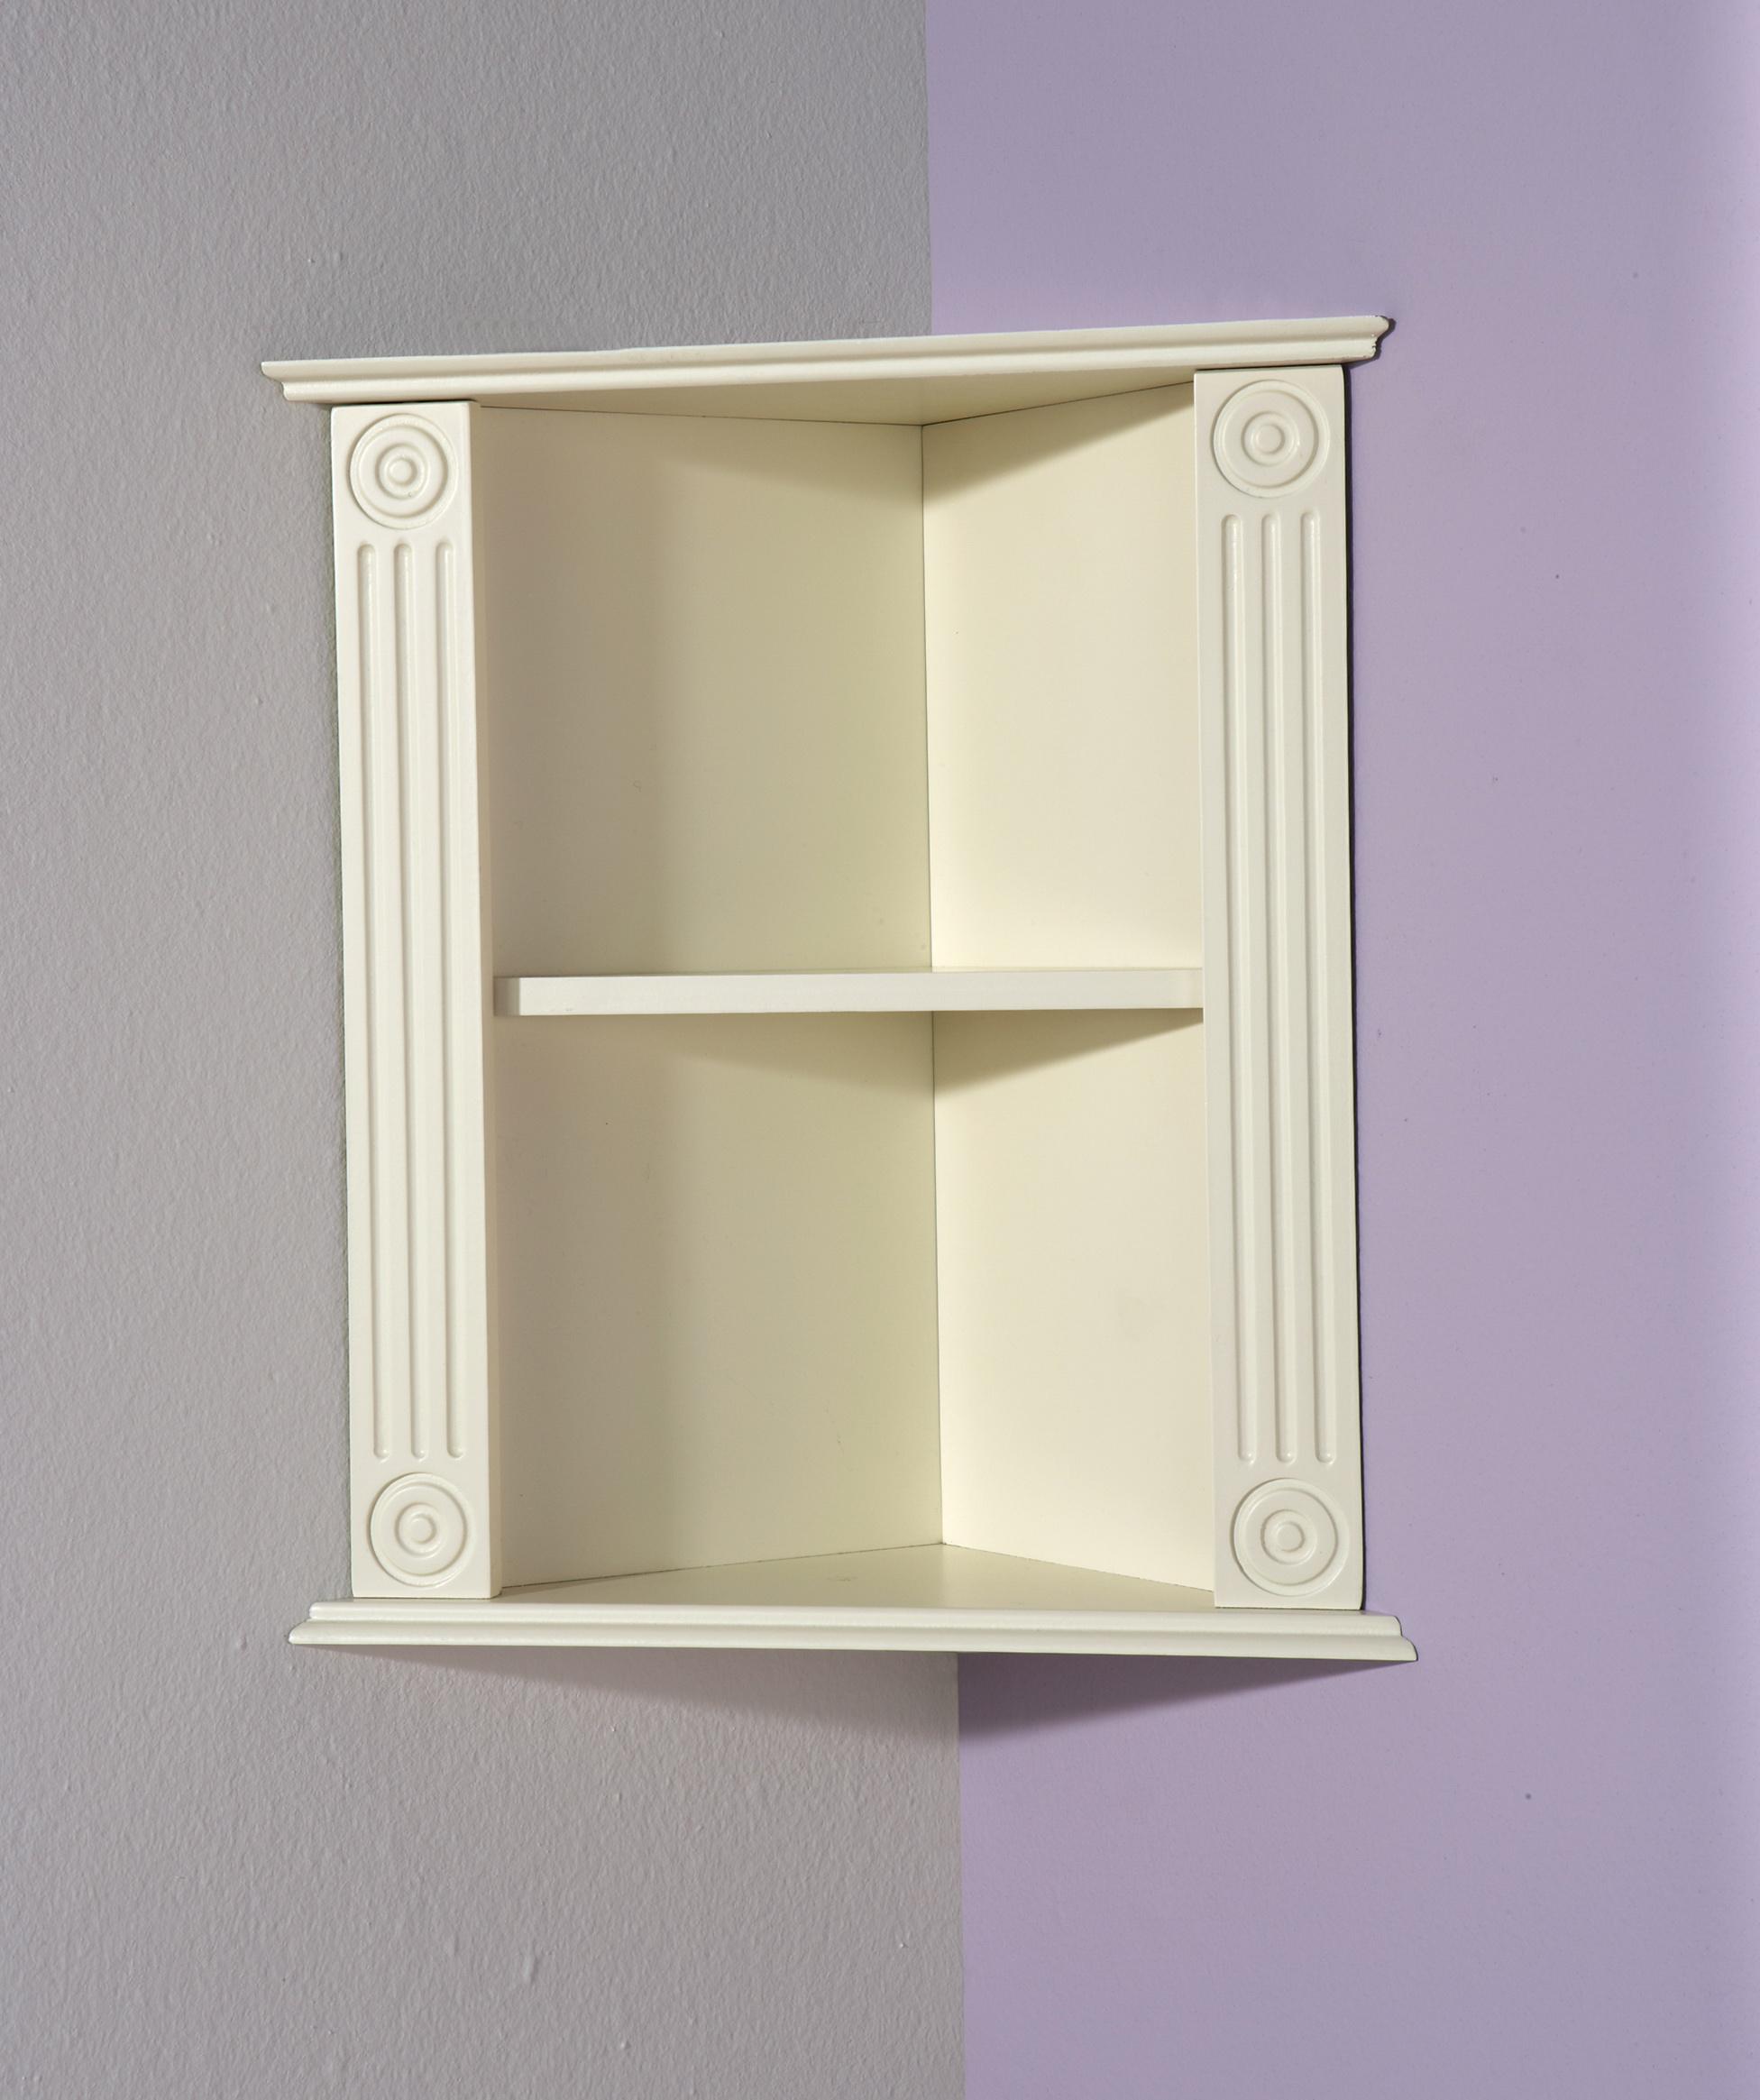 Wall Corner Shelf Designs